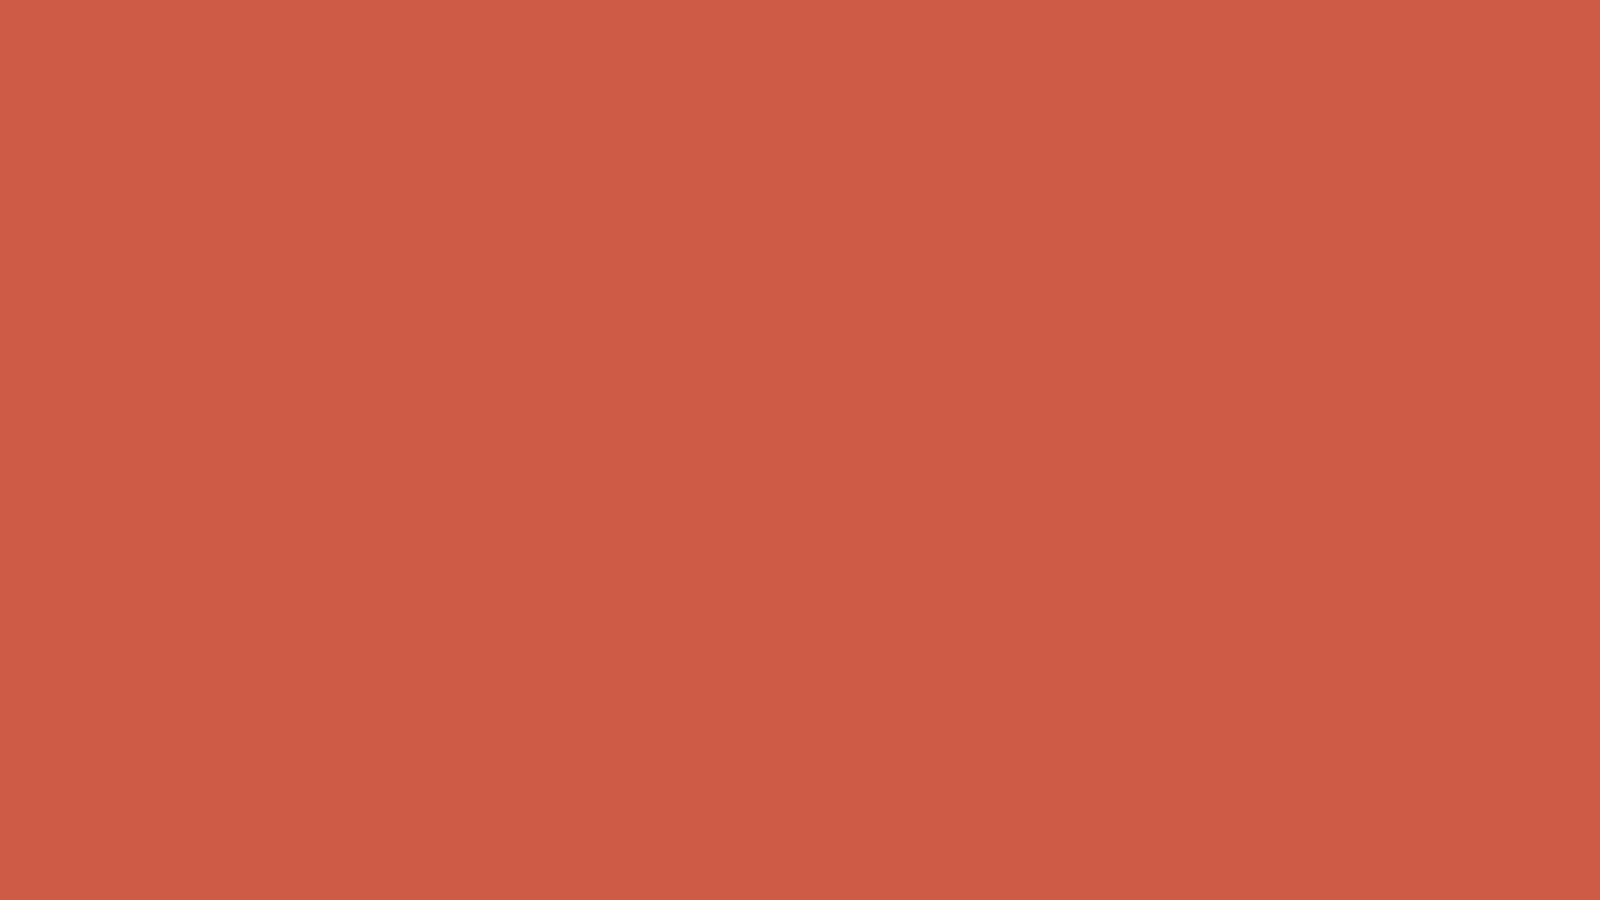 1600x900 Dark Coral Solid Color Background